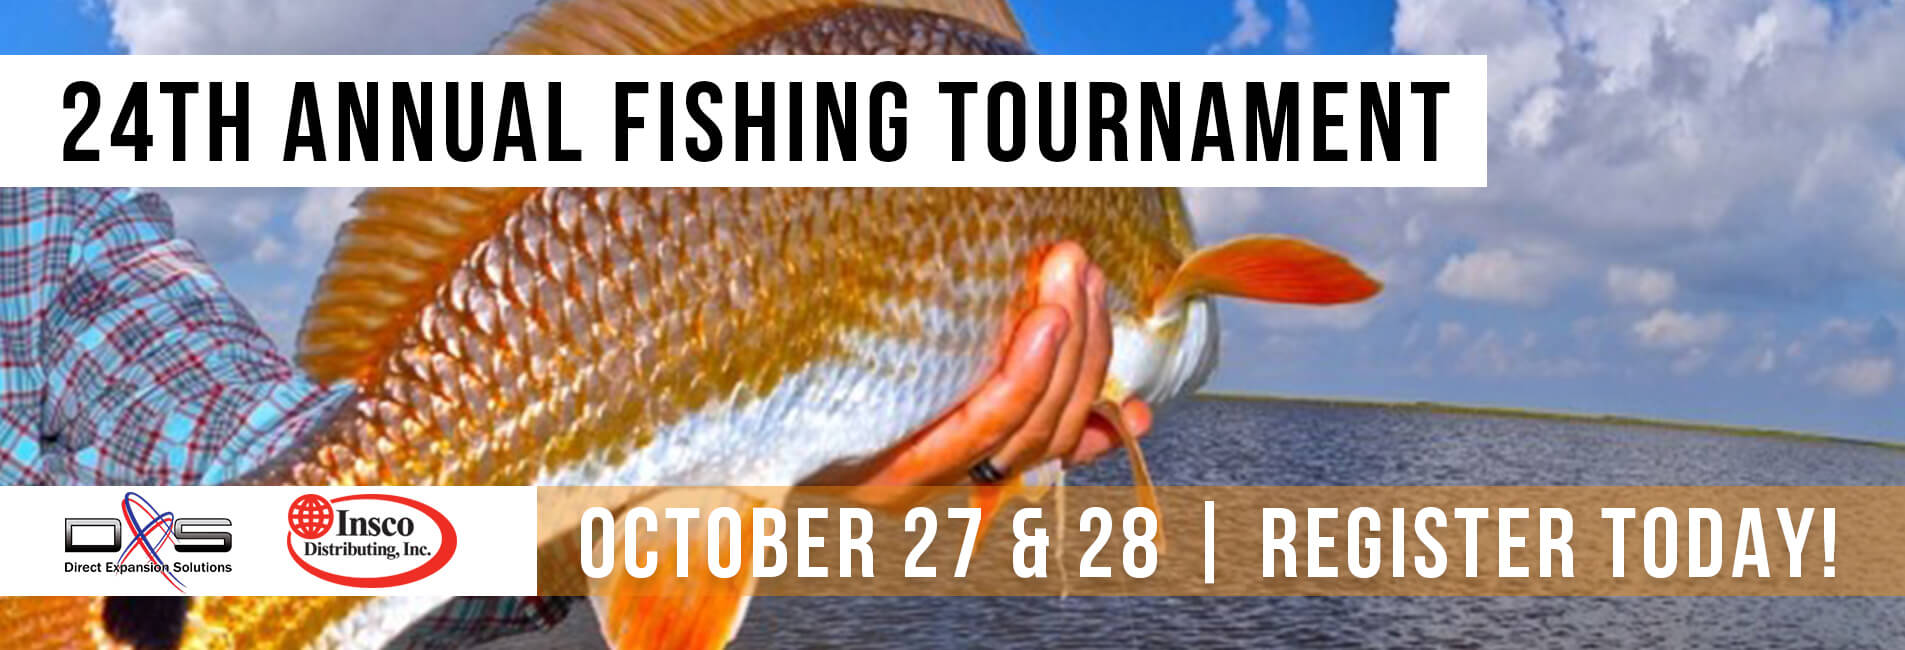 Home for Fishing tournaments in texas 2017